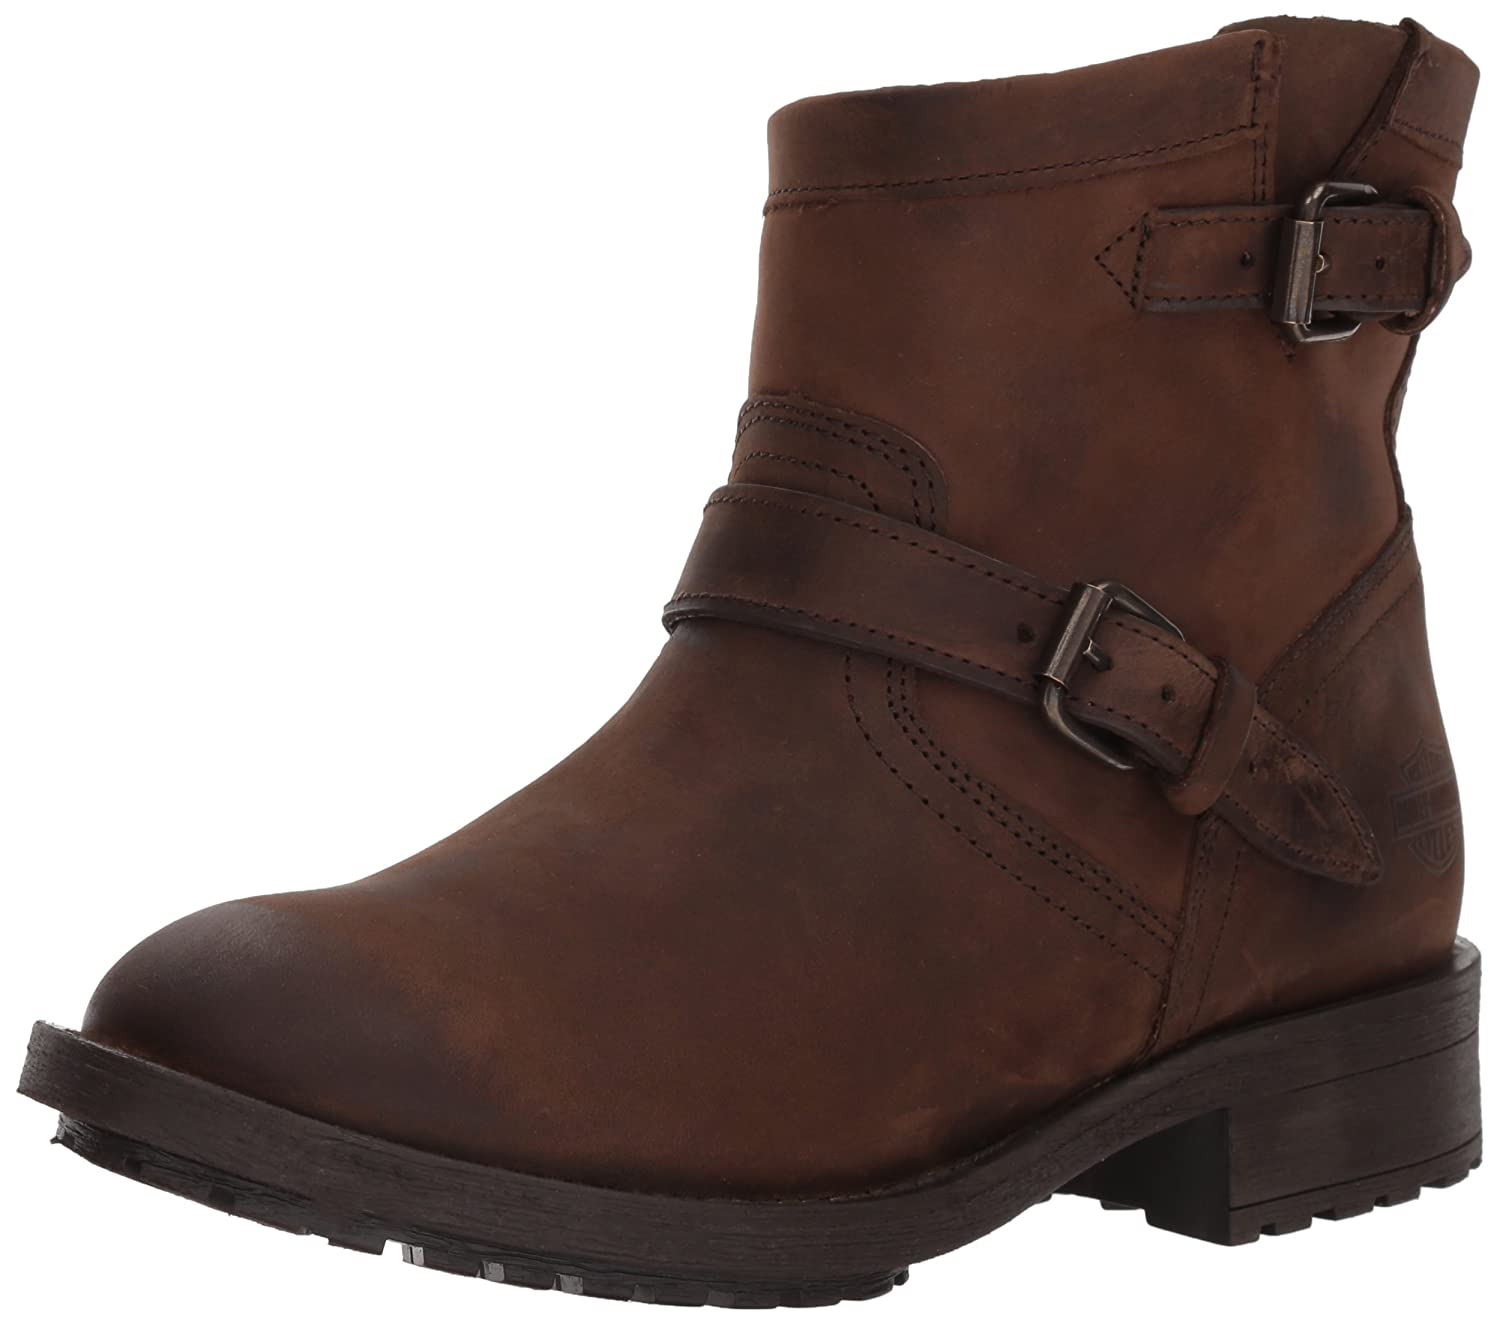 Harley-Davidson Women's Allerton Ankle Boot B077VSVRX5 08.5 Medium US|Brown